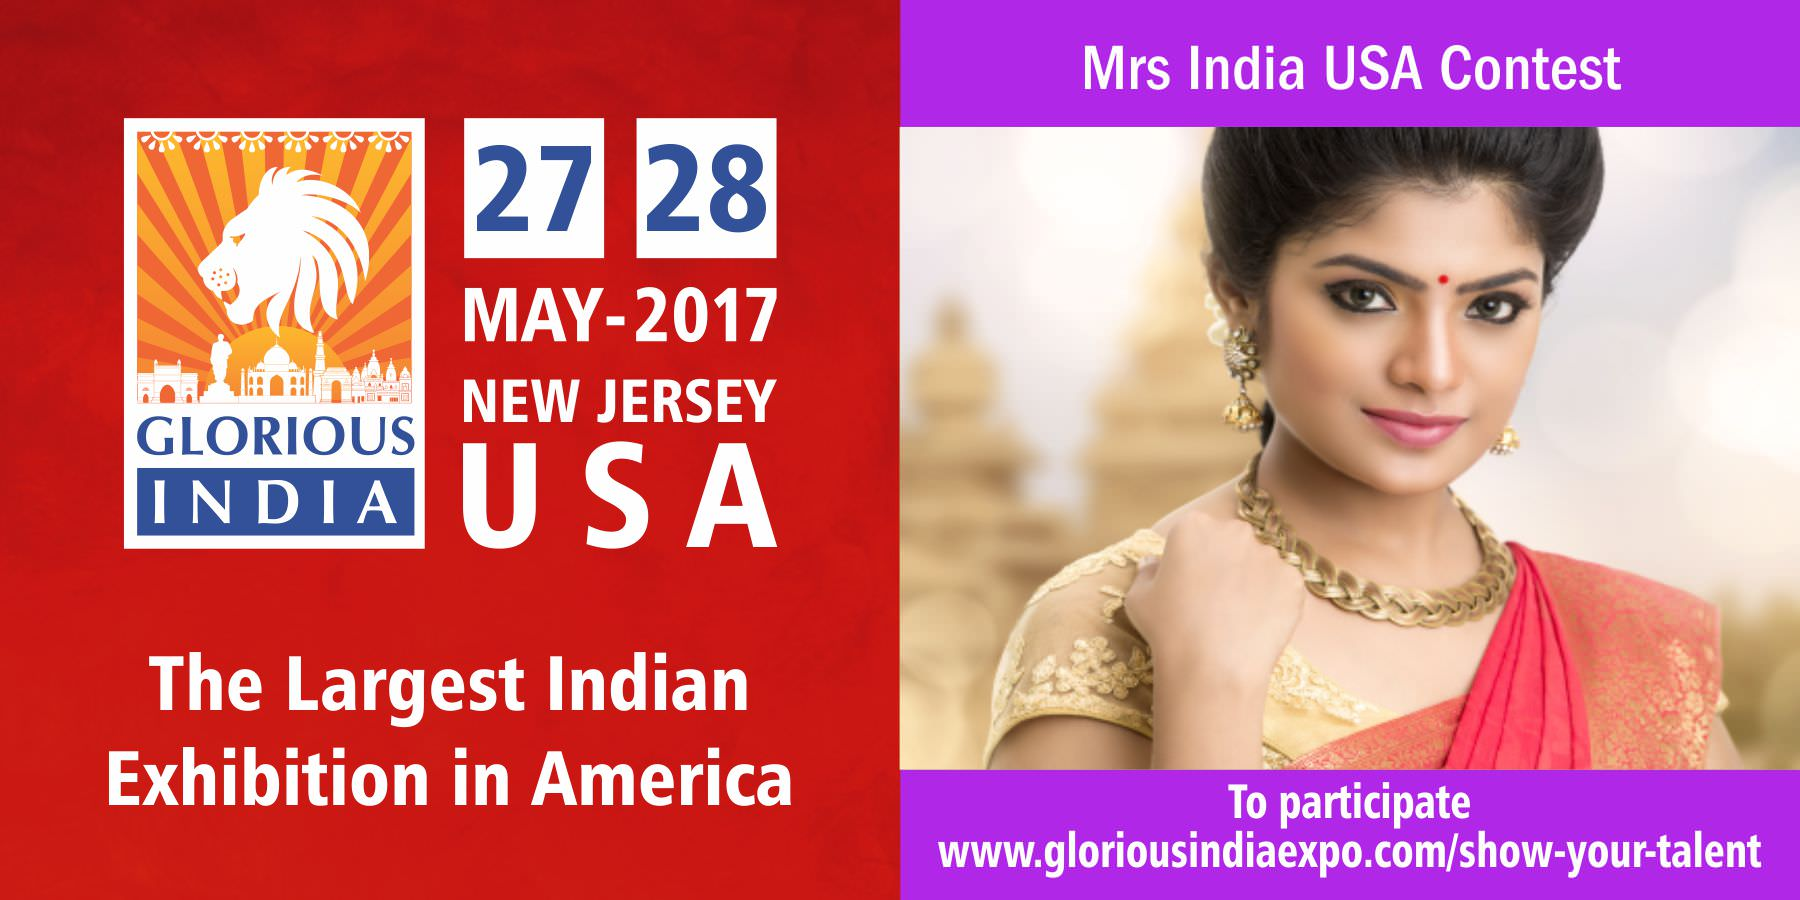 Glorious India Expo - Mrs India USA Contest